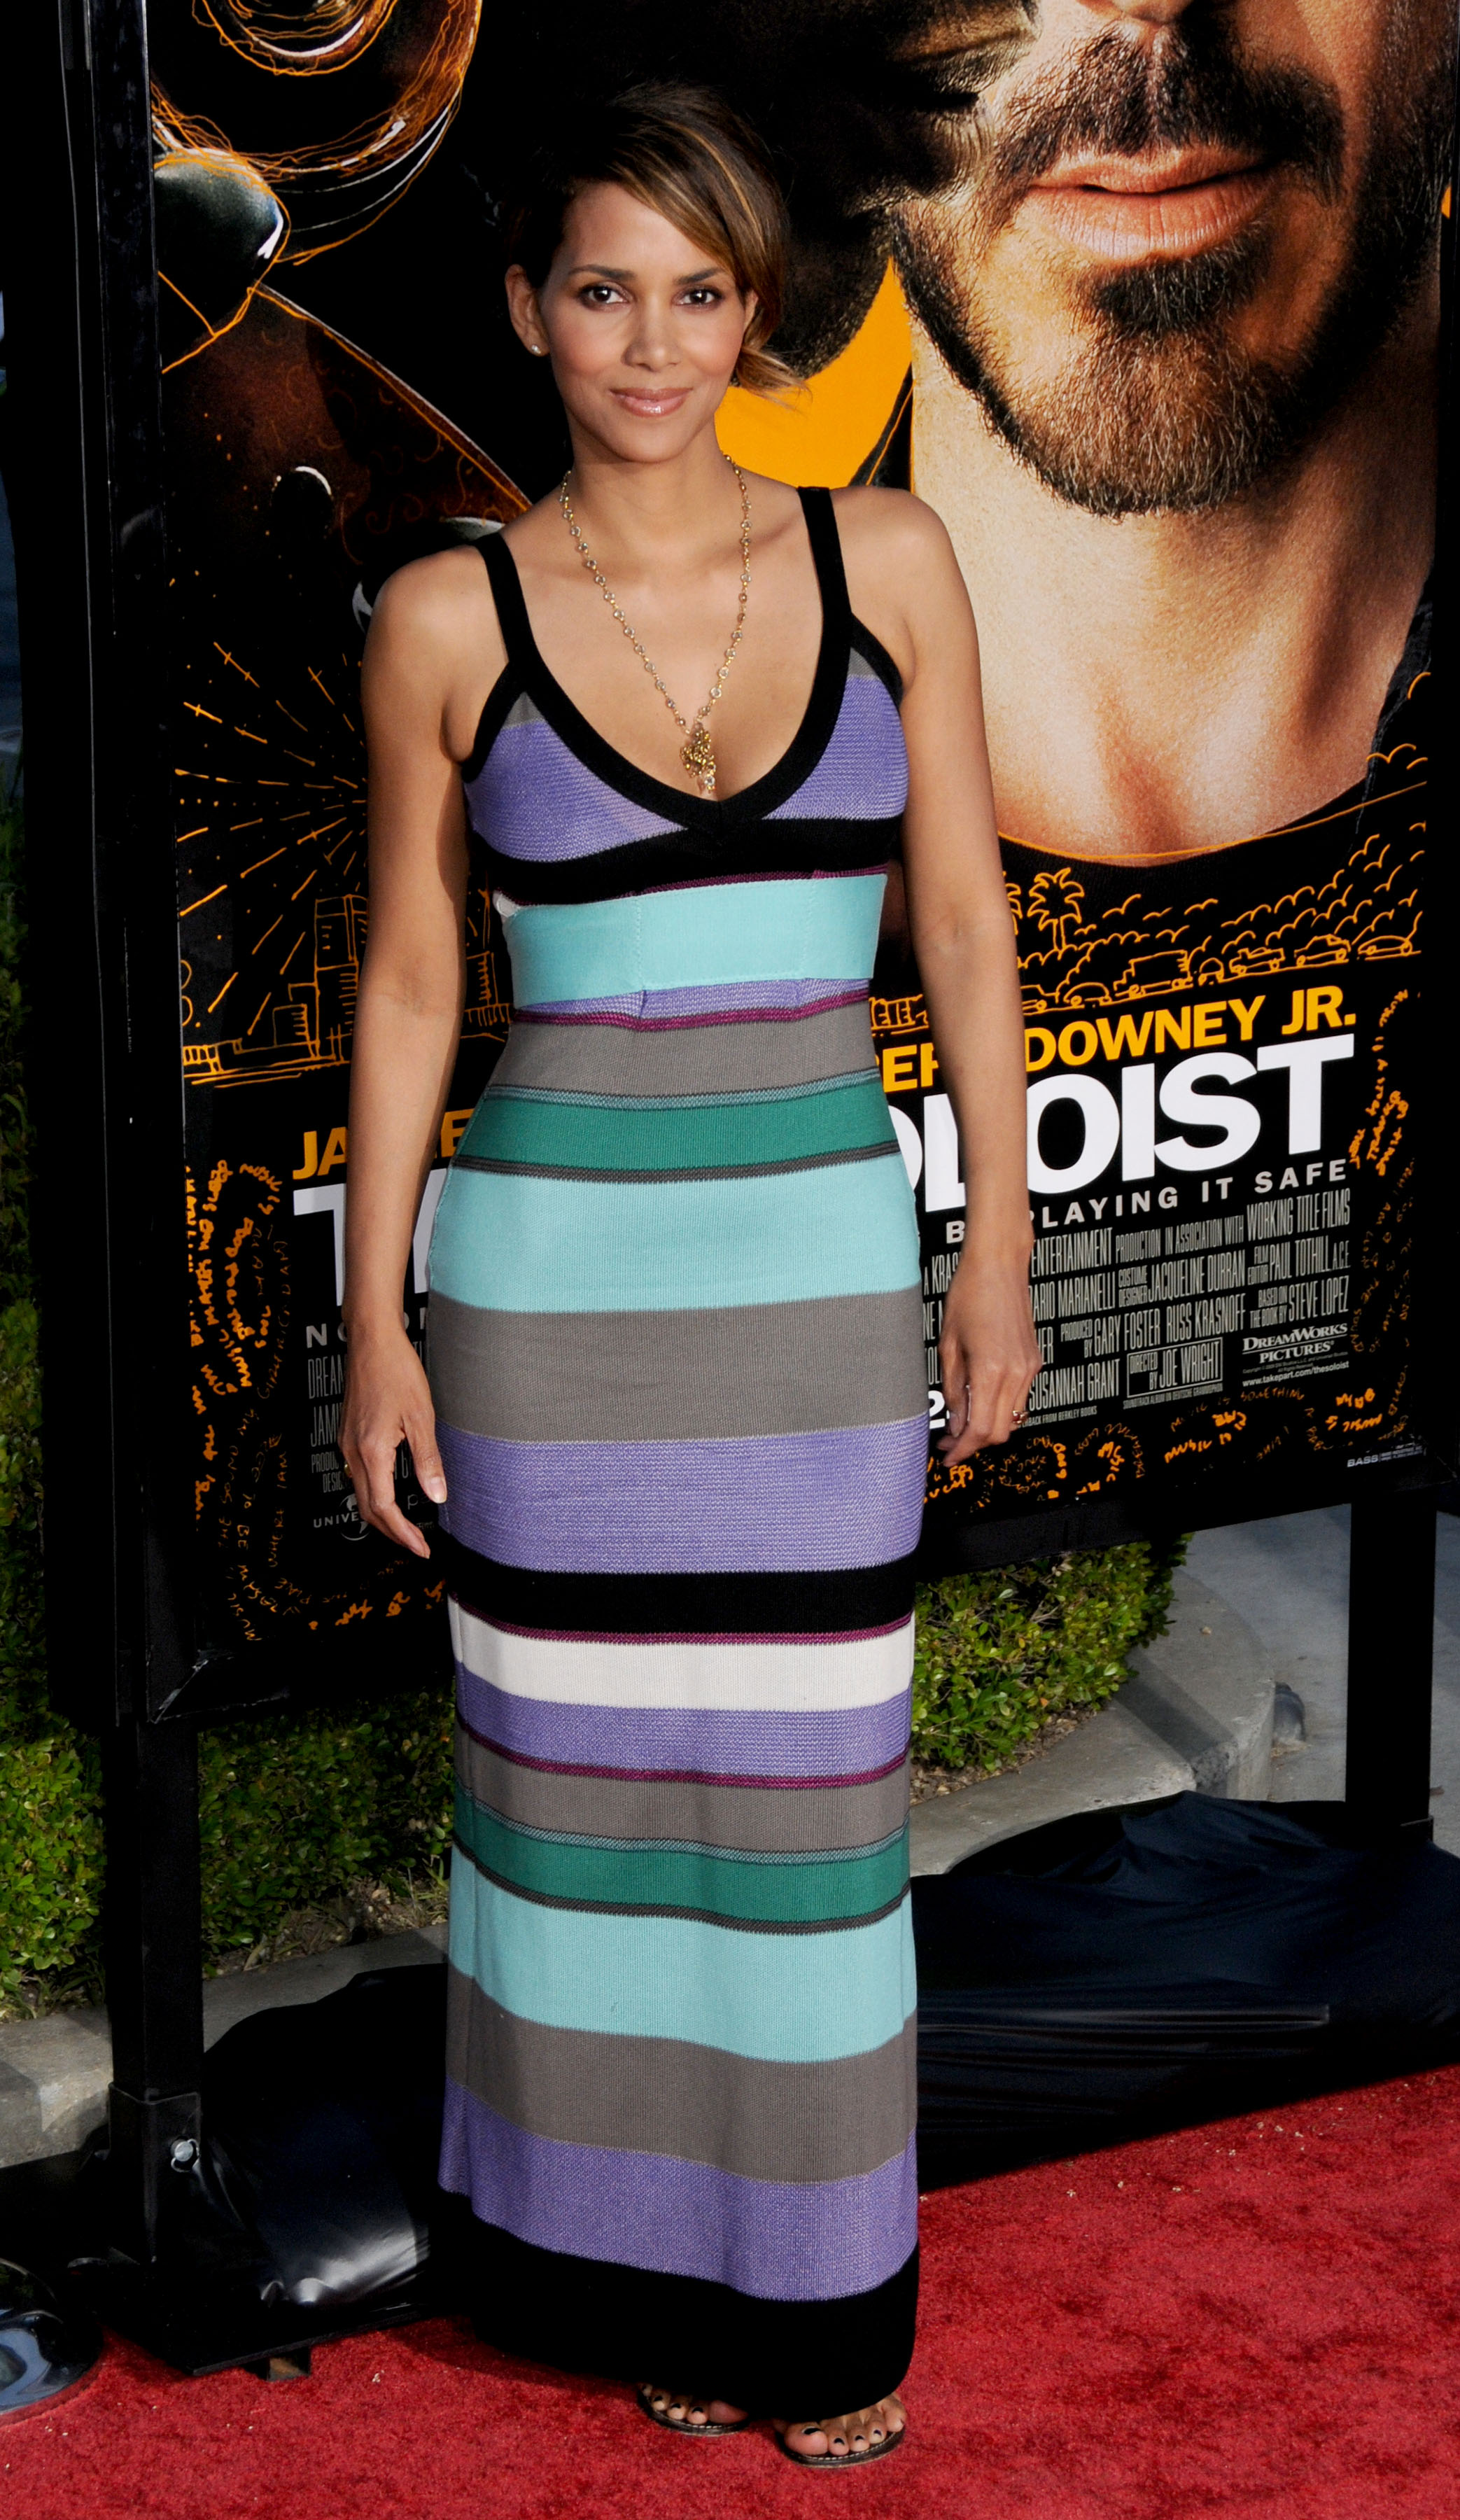 64437_Halle_Berry_The_Soloist_premiere_in_Los_Angeles_29_122_76lo.jpg